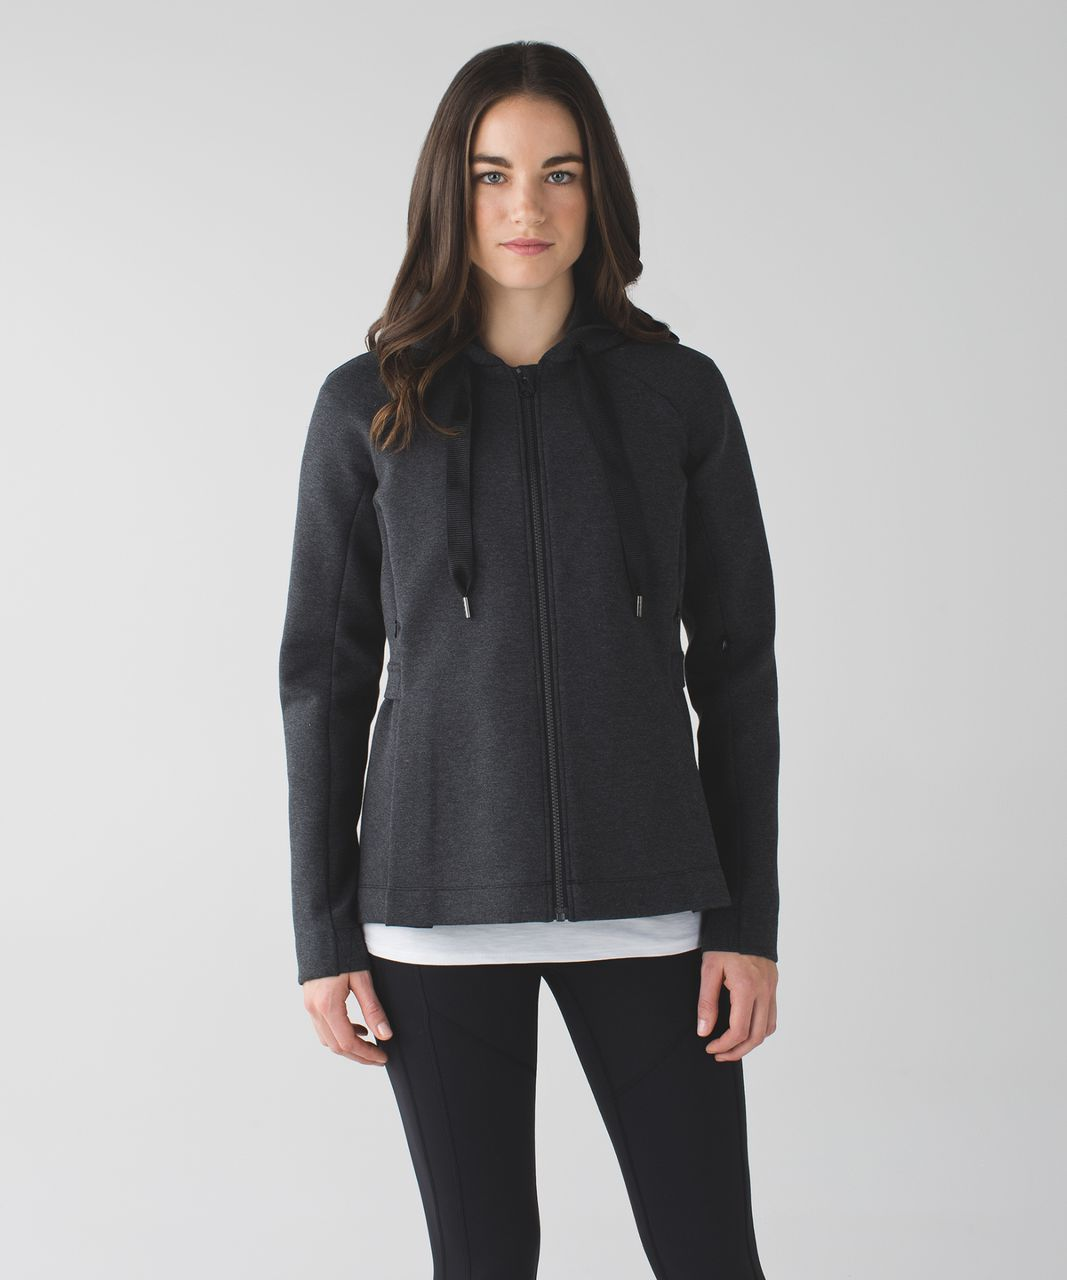 Lululemon &go Skyline Jacket - Heathered Black / Black